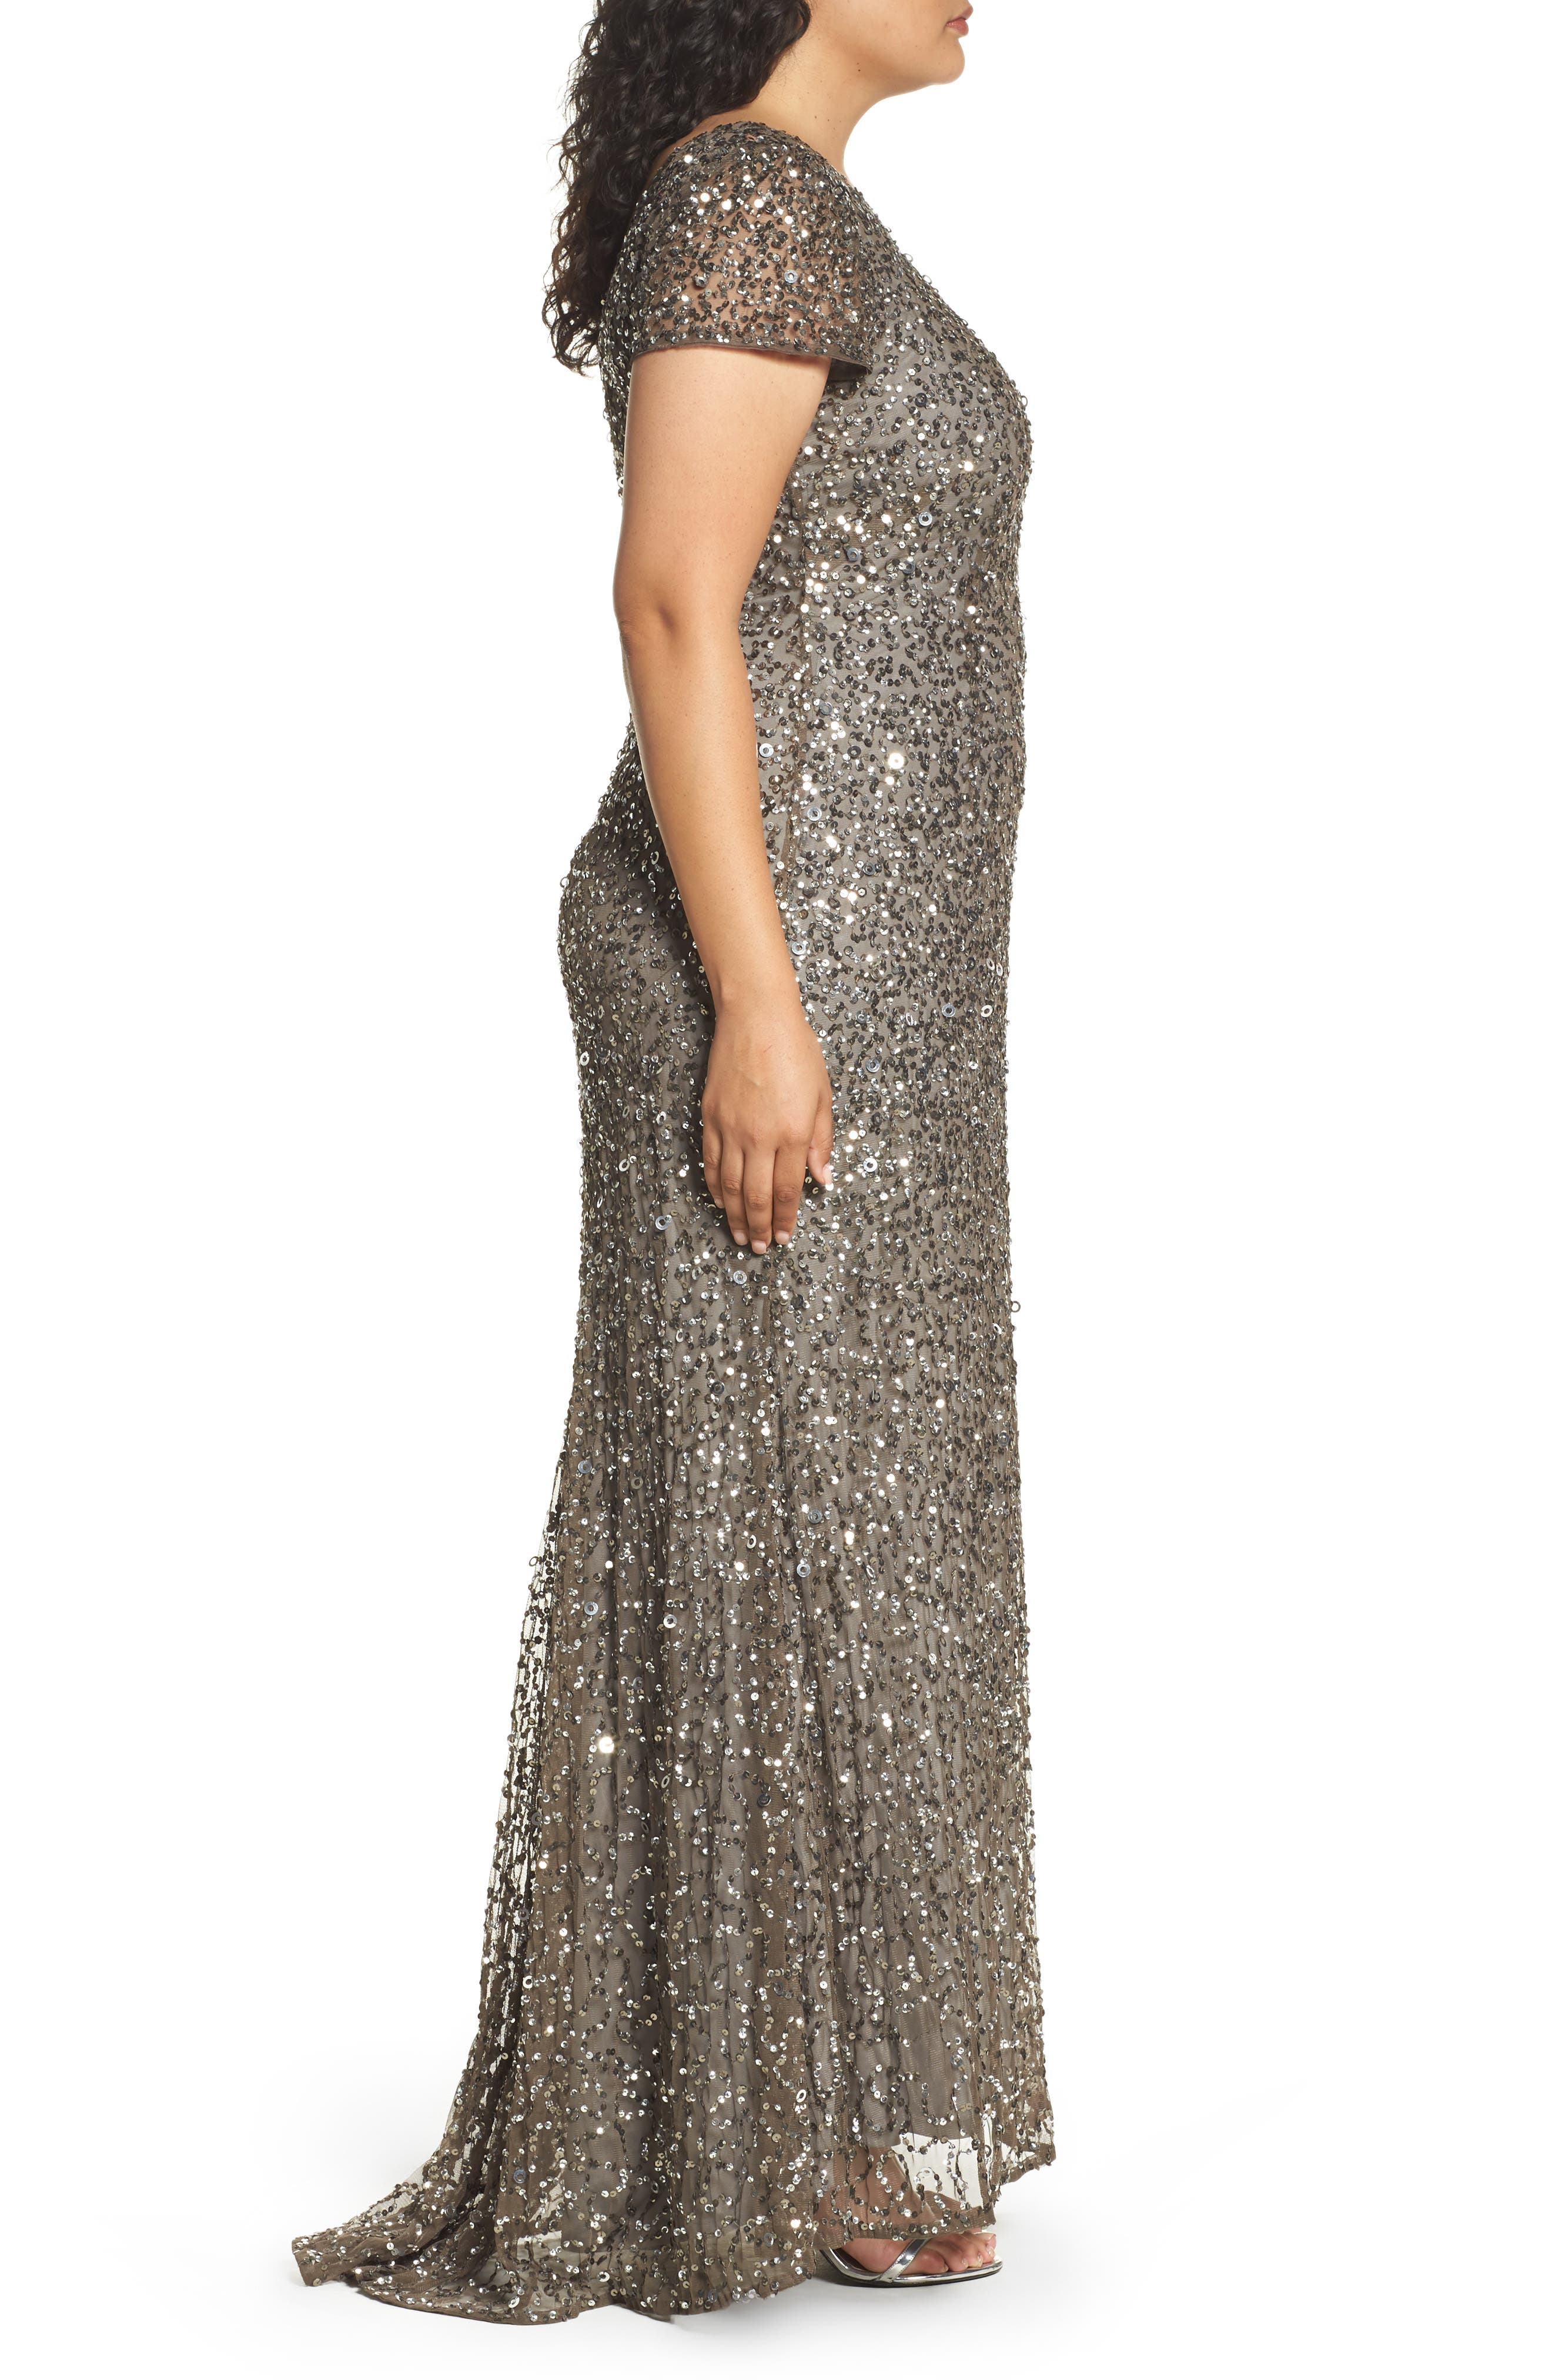 ADRIANNA PAPELL, Embellished Scoop Back Gown, Alternate thumbnail 4, color, 050